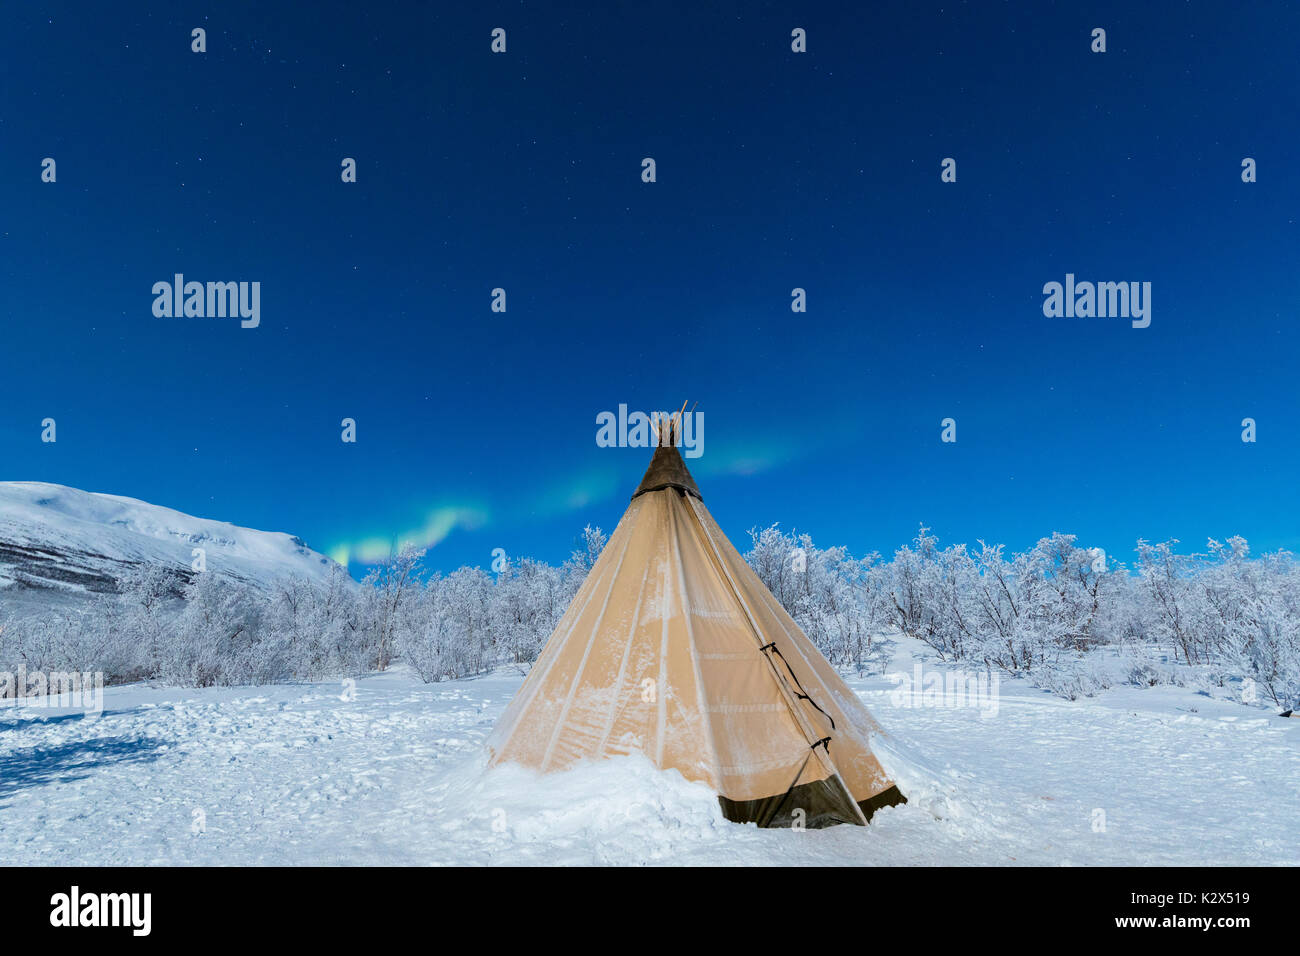 Isolated Sami tent in the snow under Northern Lights, Abisko, Kiruna Municipality, Norrbotten County, Lapland, Sweden - Stock Image